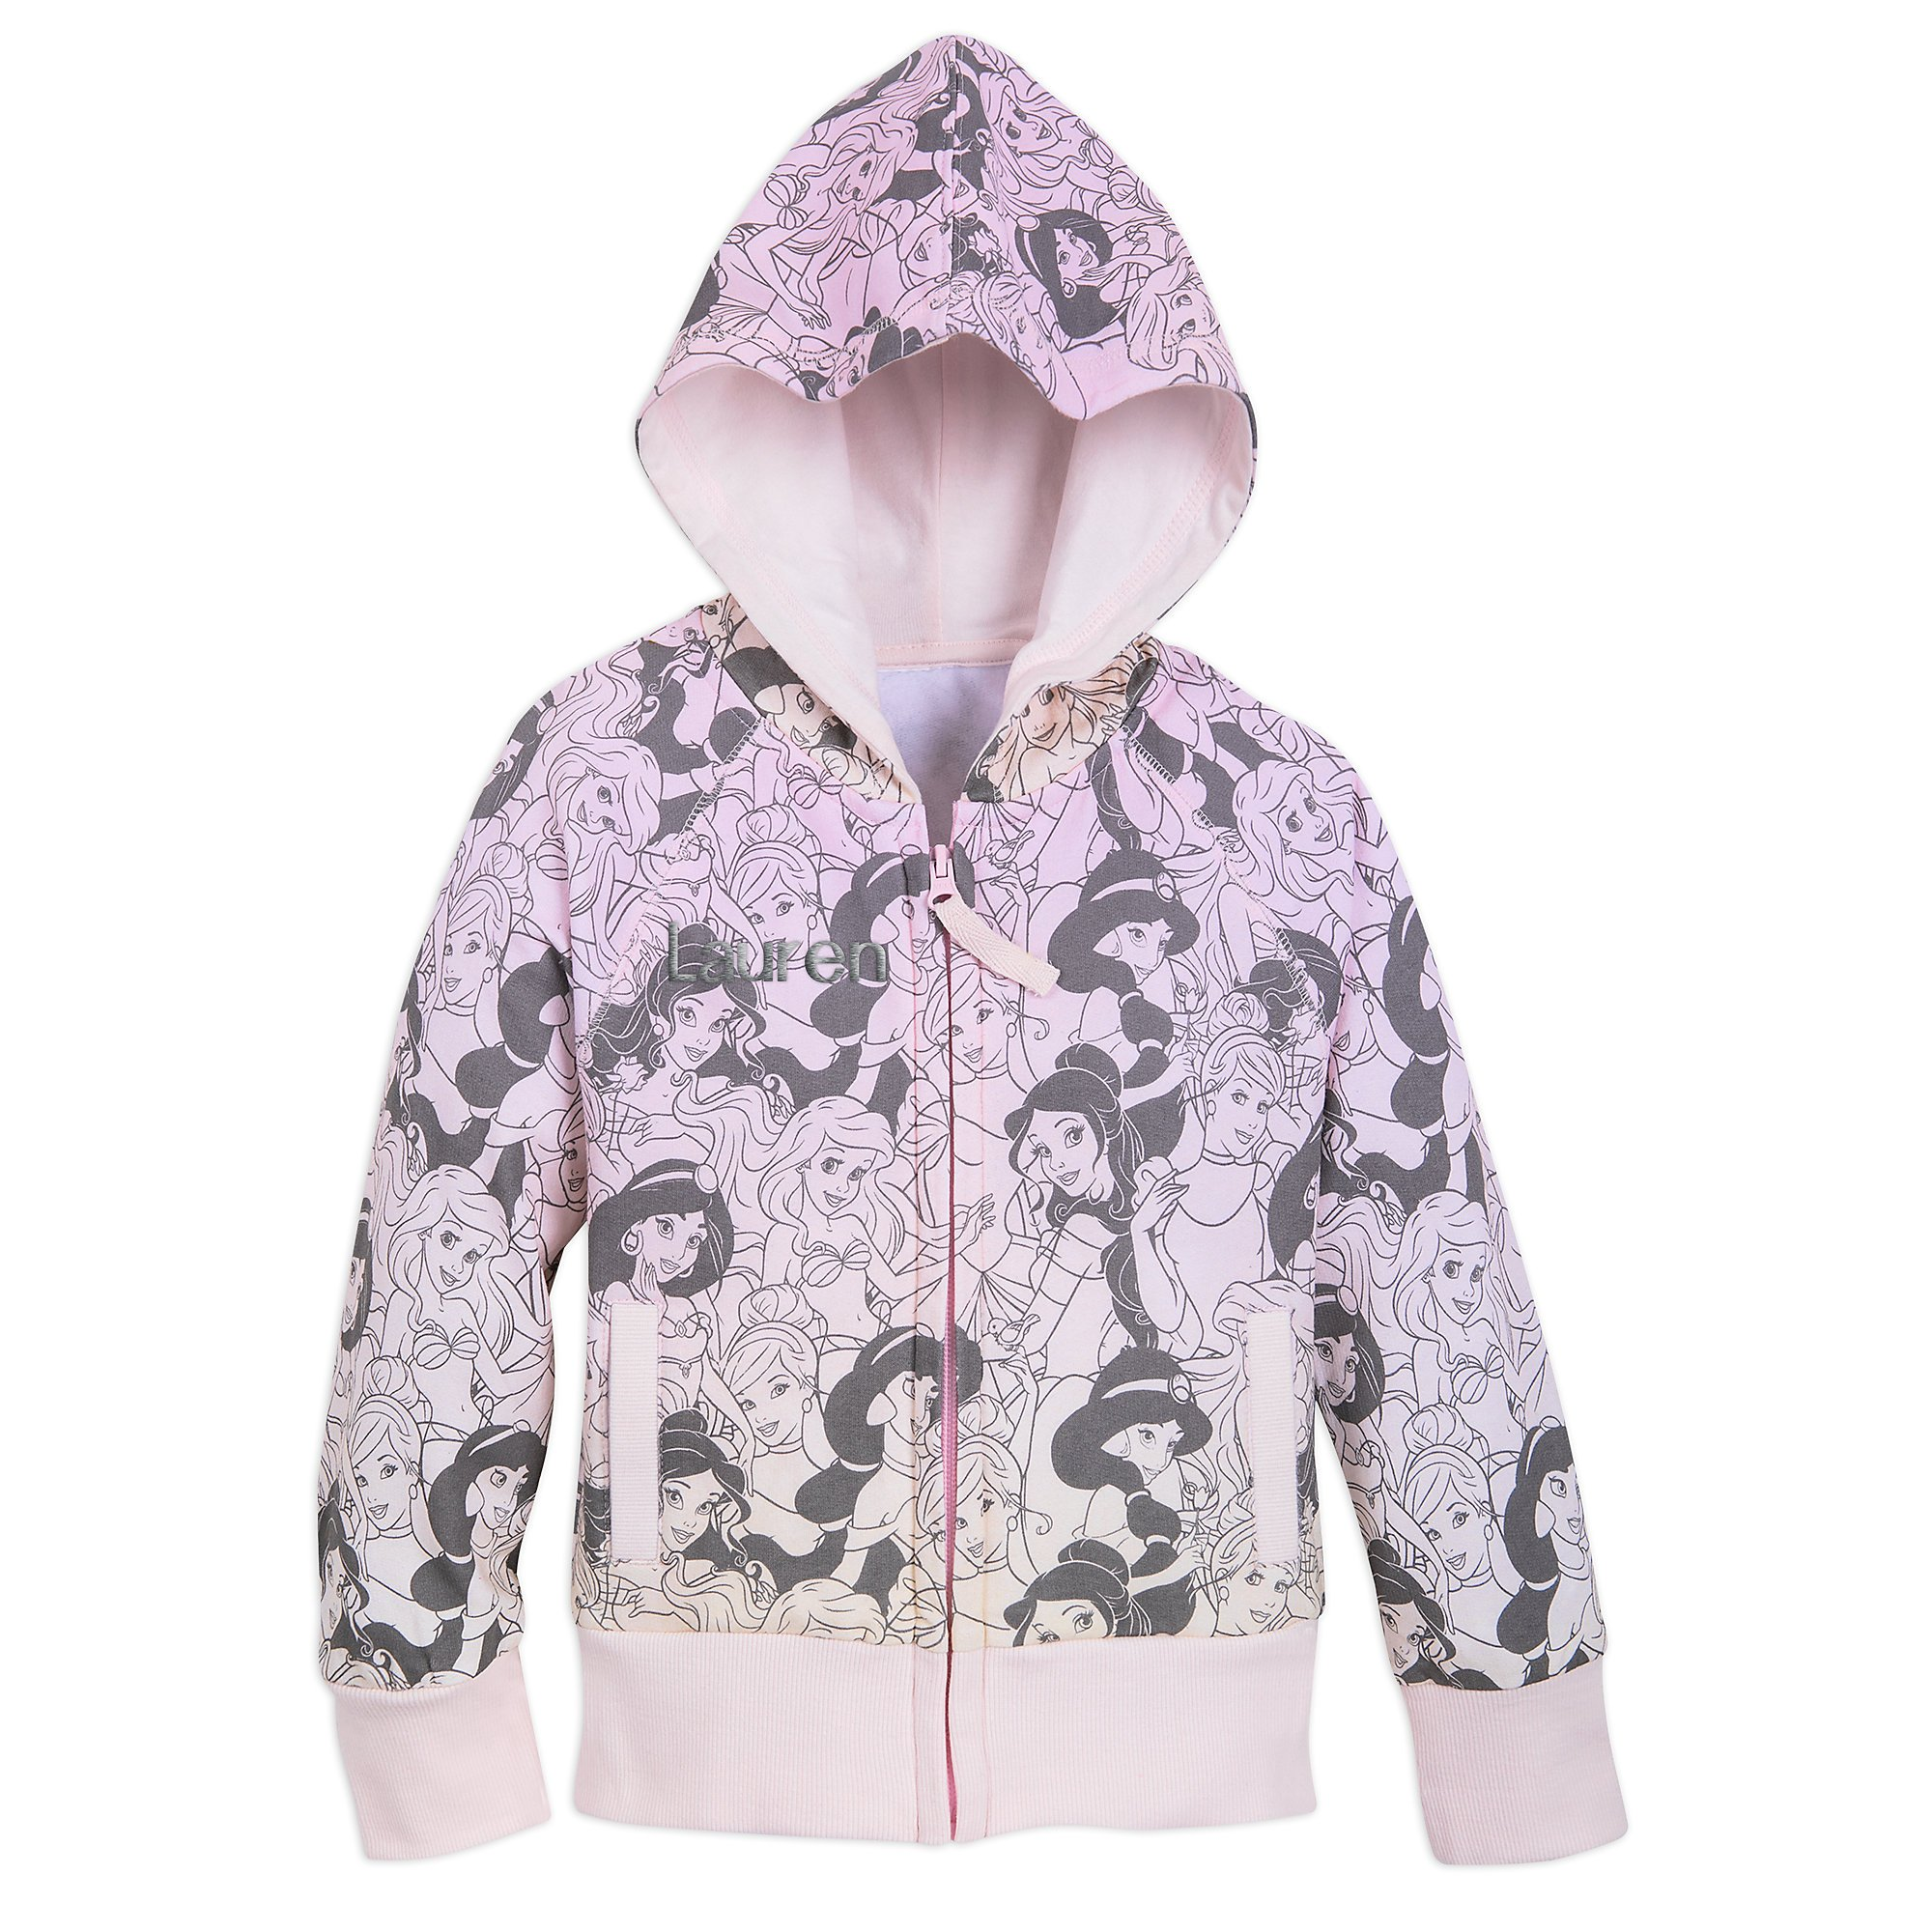 Disney Princess Hoodie for Girls - Size 5/6 Pink